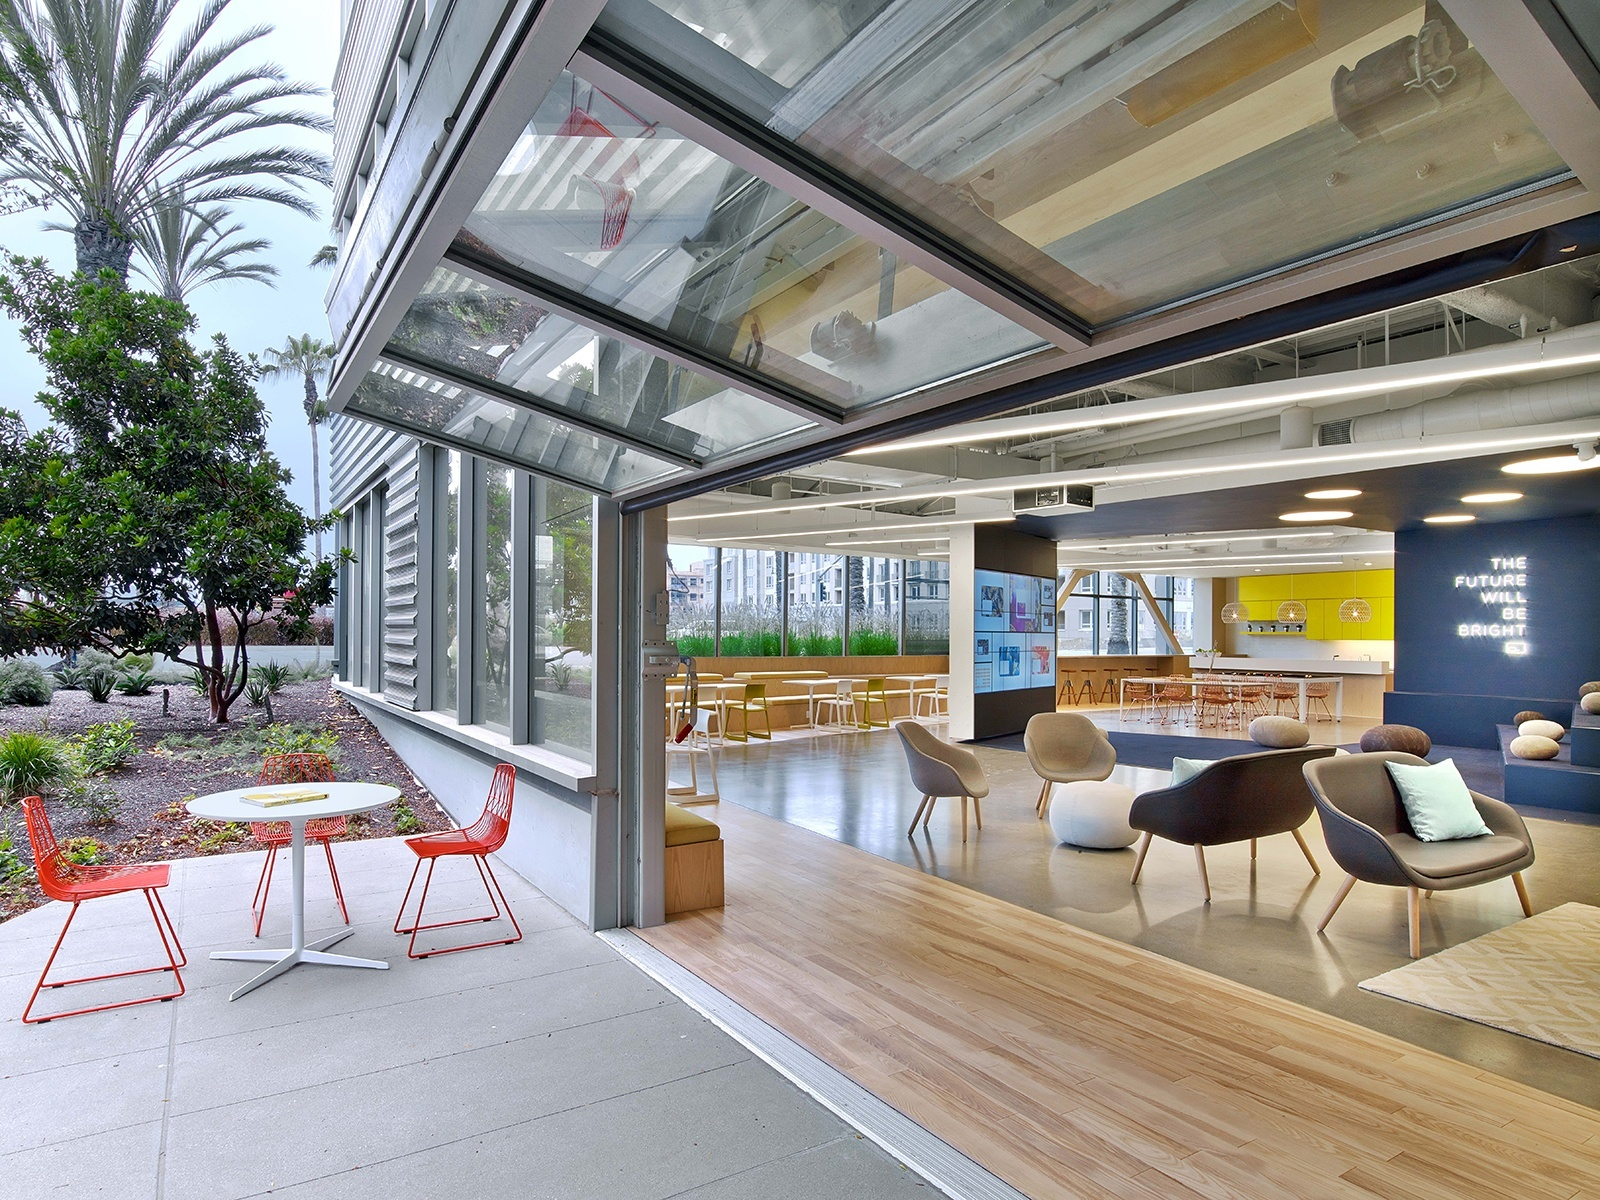 A Tour Of Fullscreens Super Cool Headquarters In Los